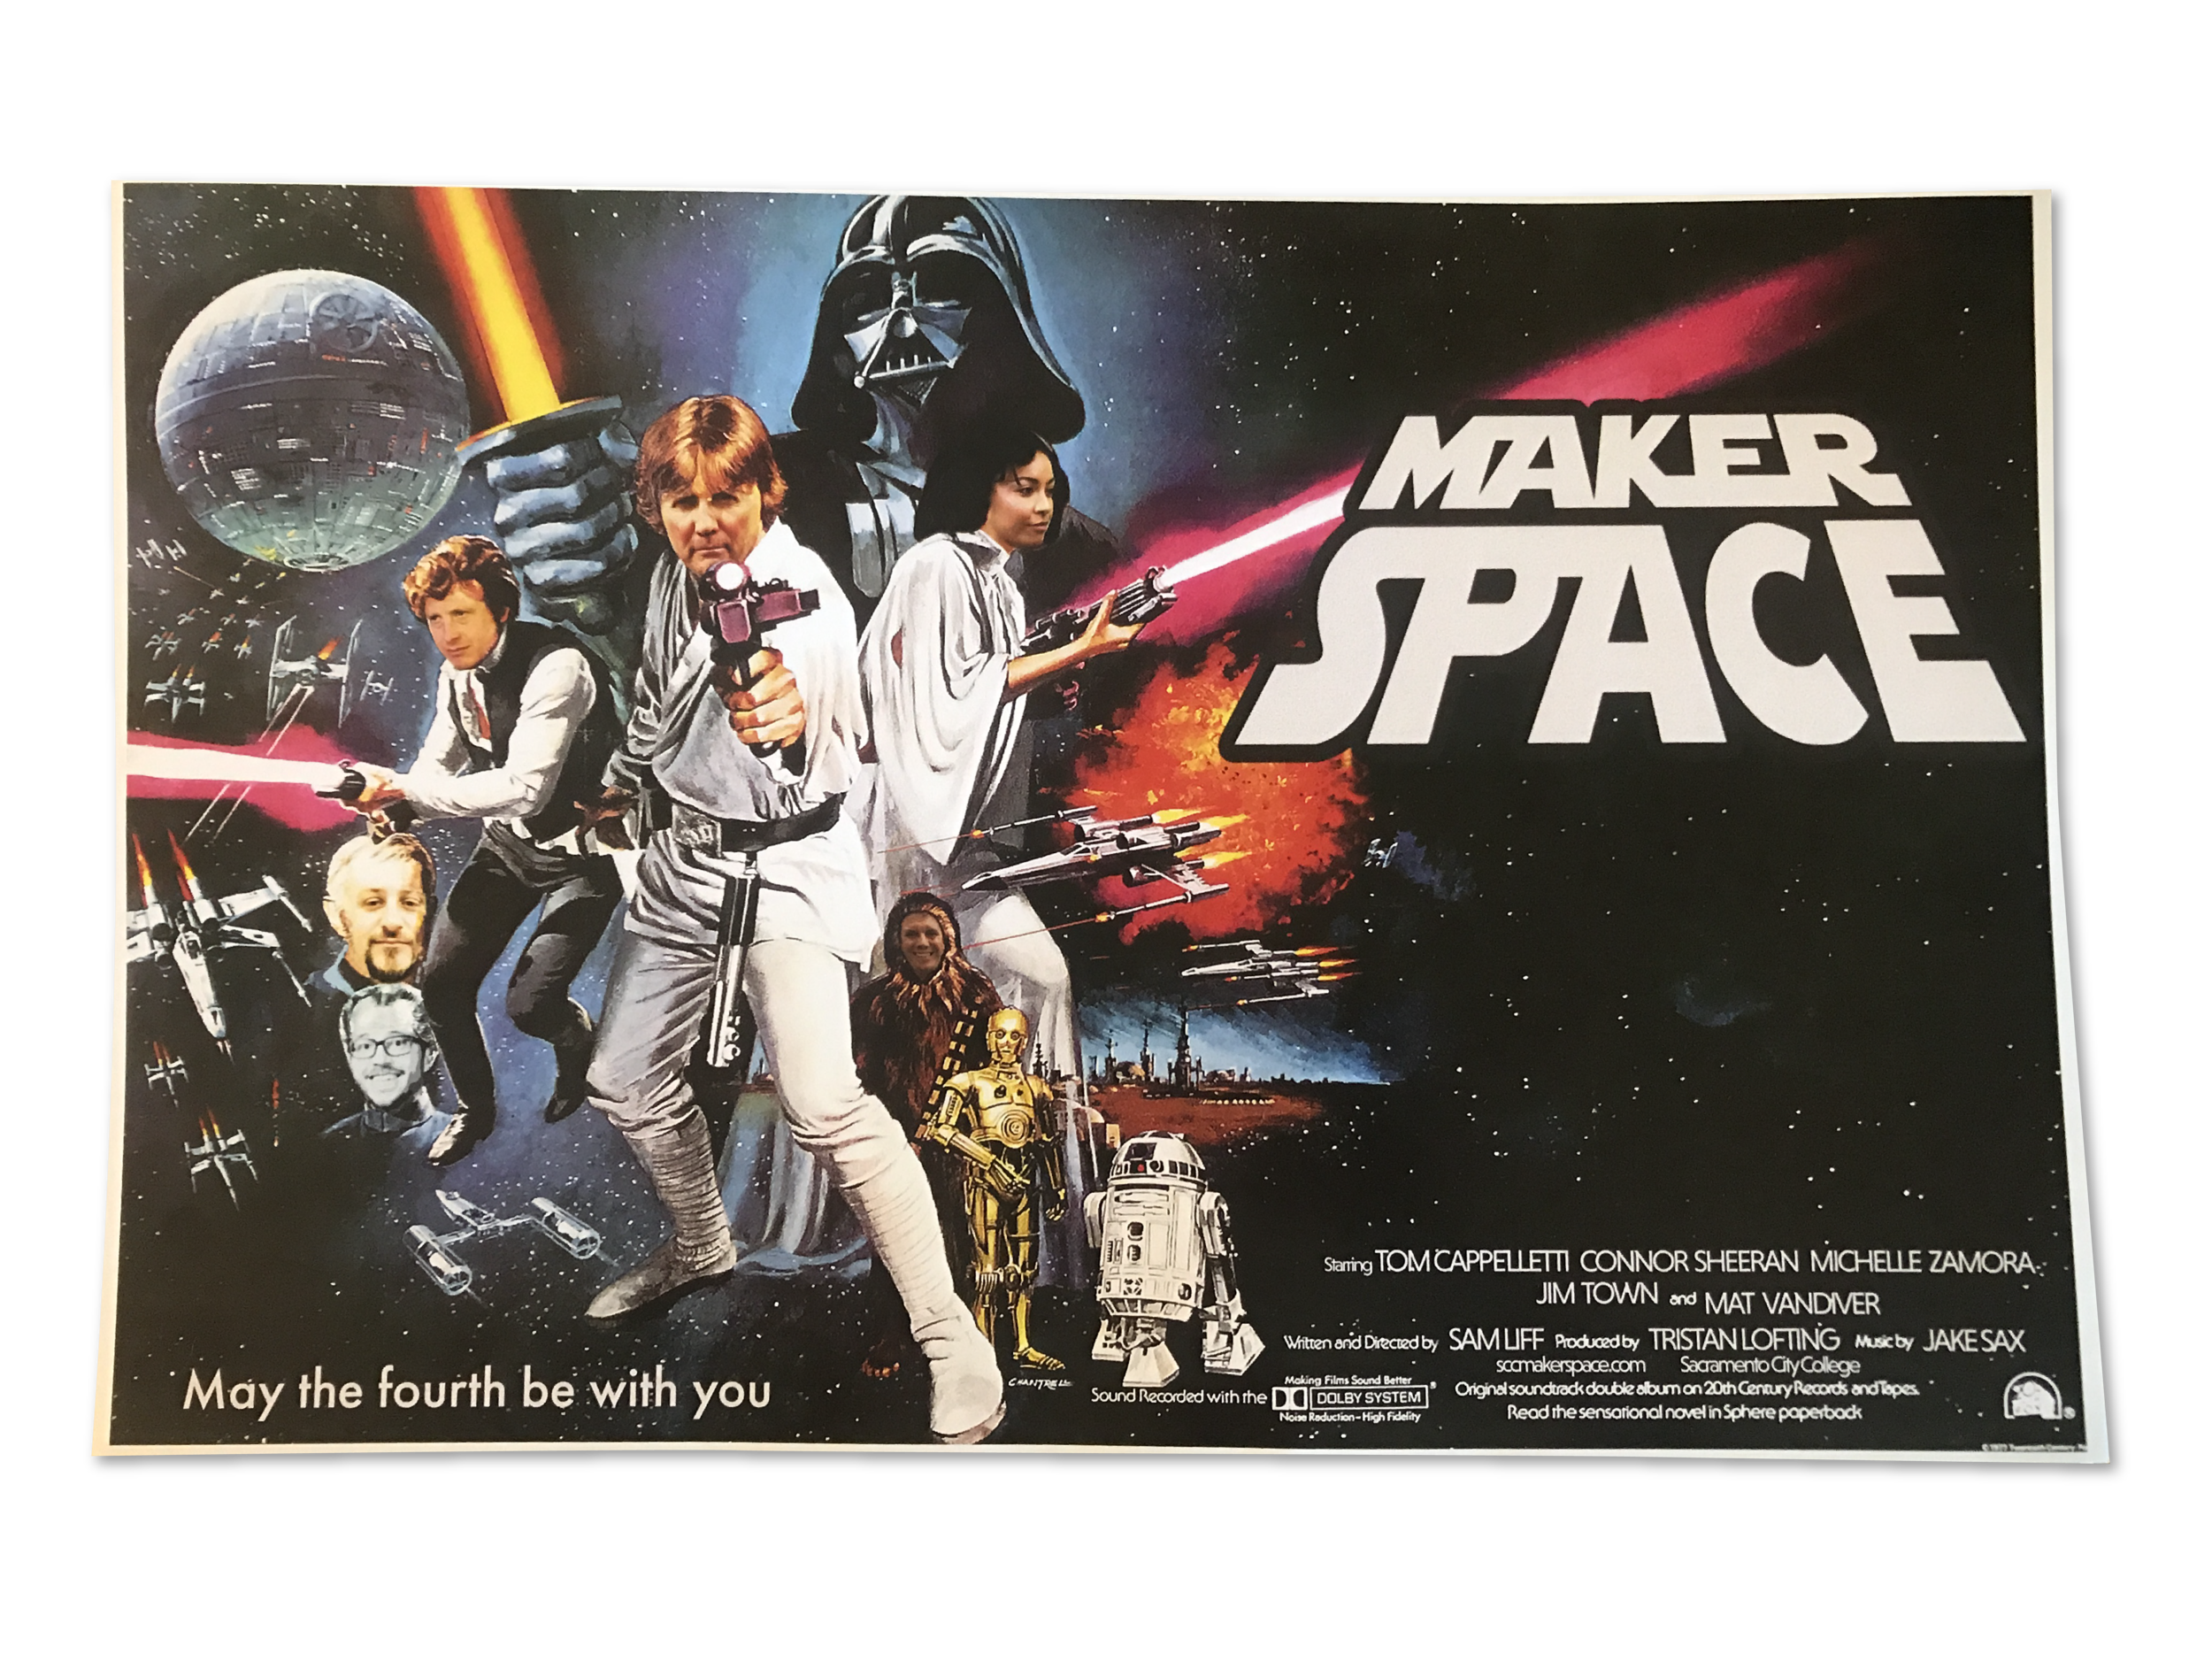 An appropriate theme for a May 4th opening, posters were designed by one of our student staff.